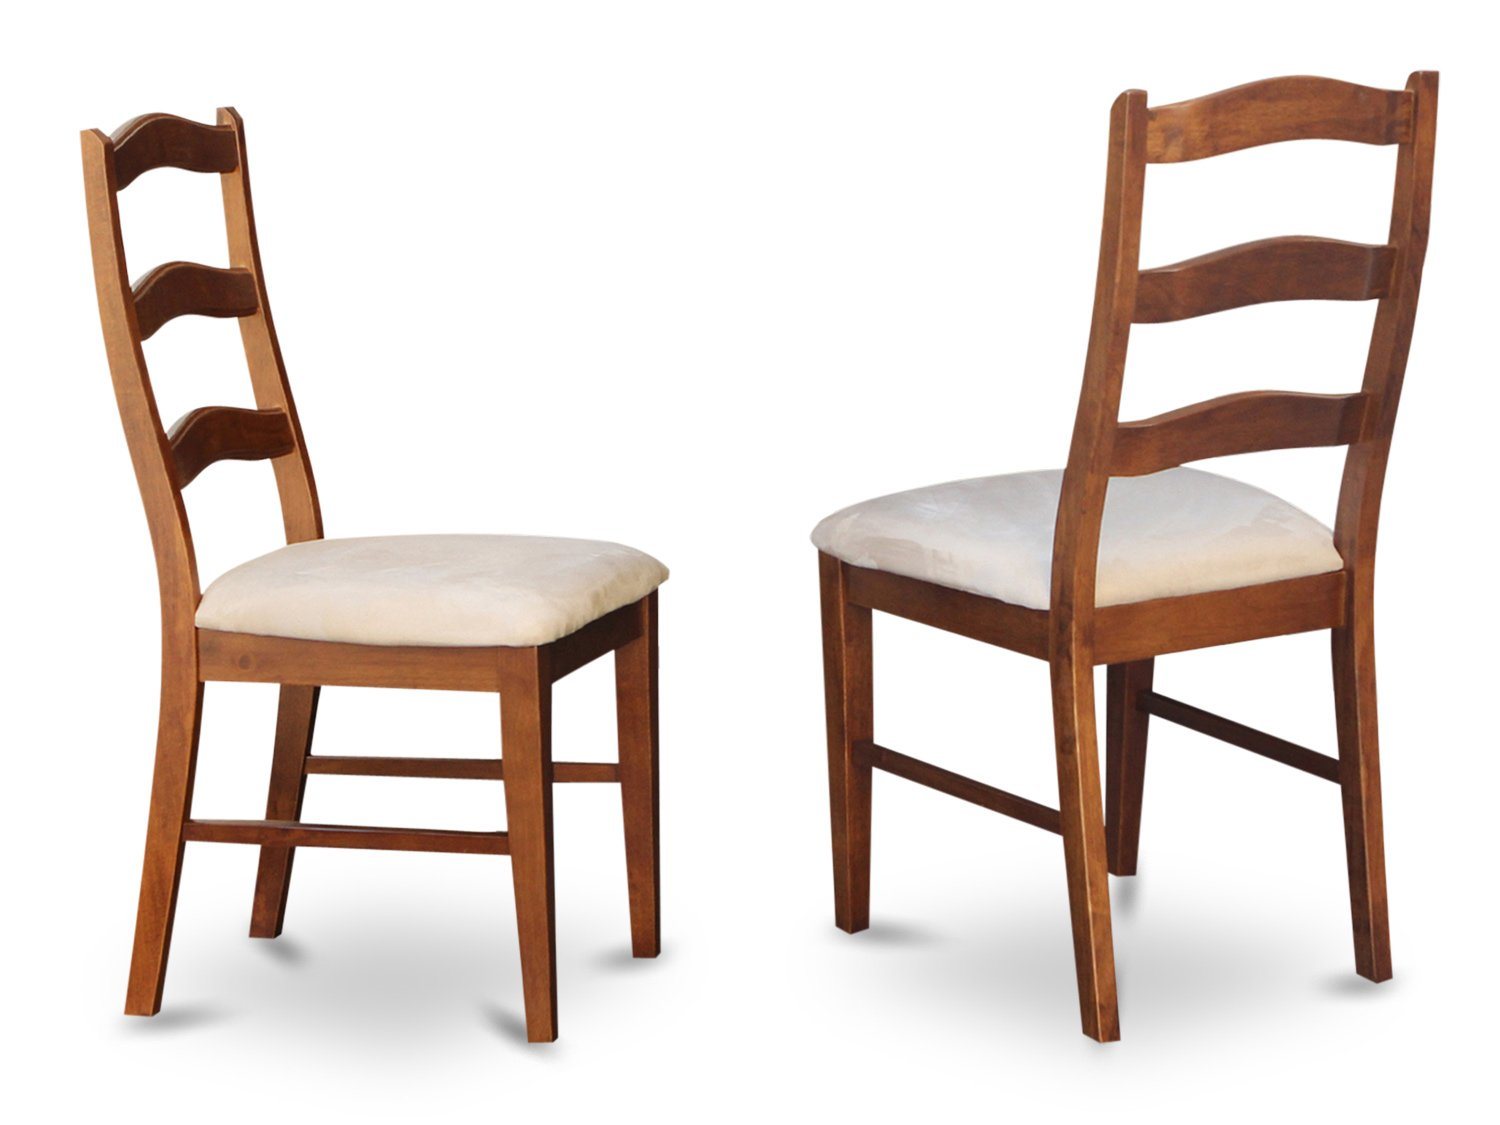 Set of 2 Henley dining room chairs in Espresso & Cinamon finish.